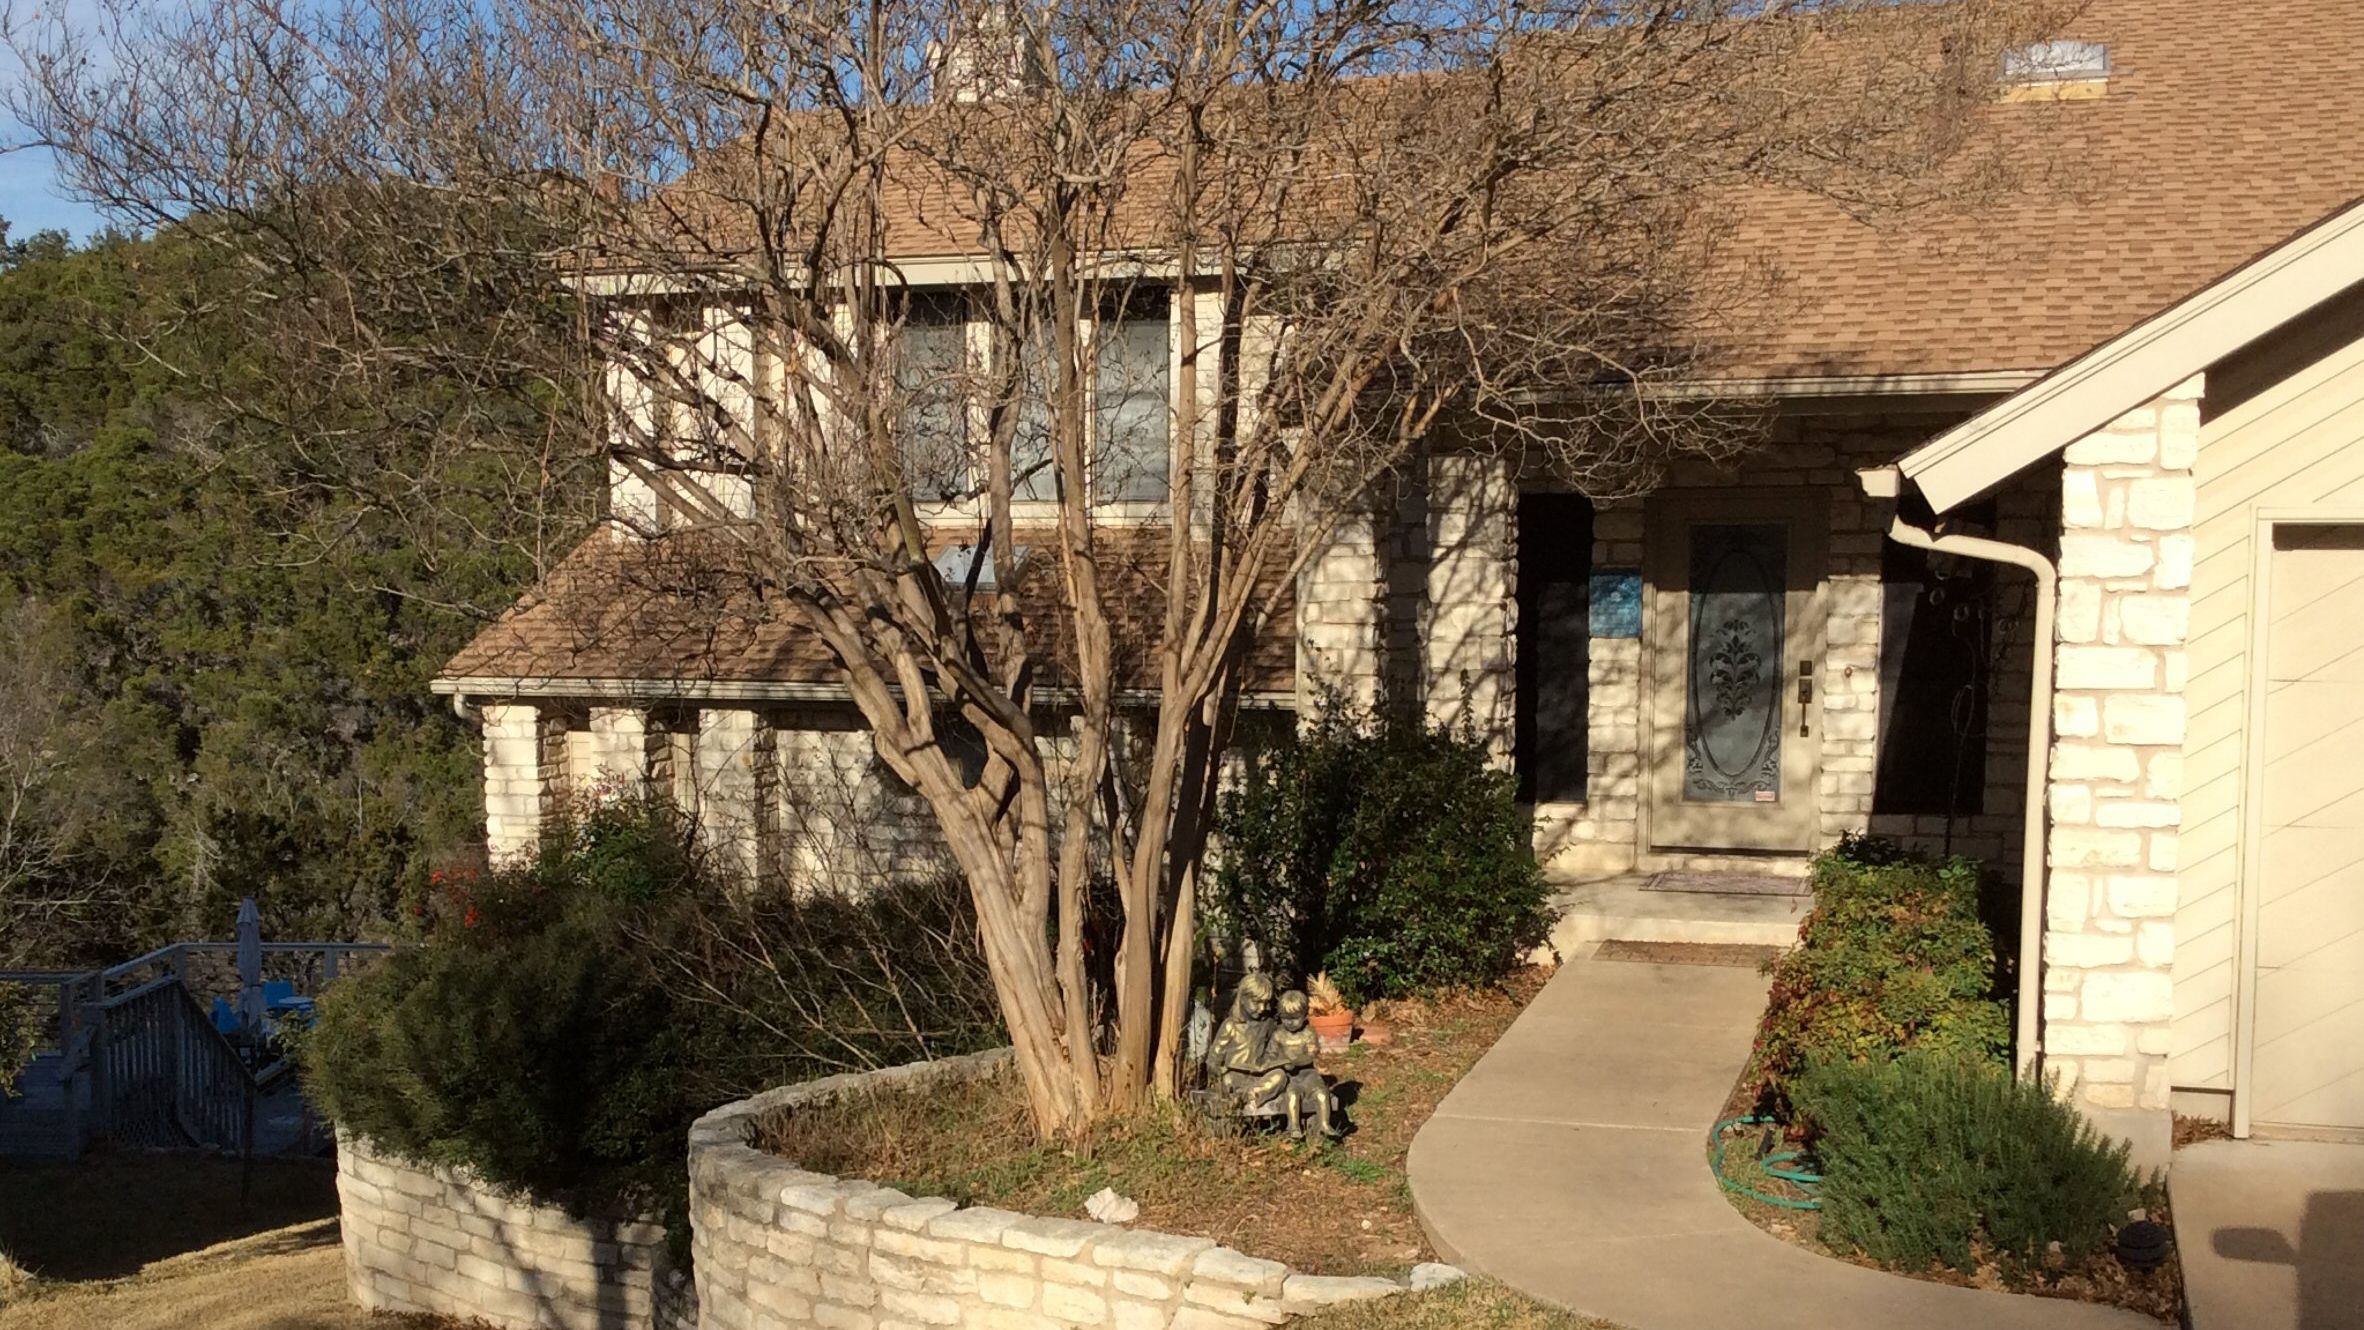 almost nature home decor custom desgned artfcal trees.htm what are austin stone and austin limestone   what are austin stone and austin limestone